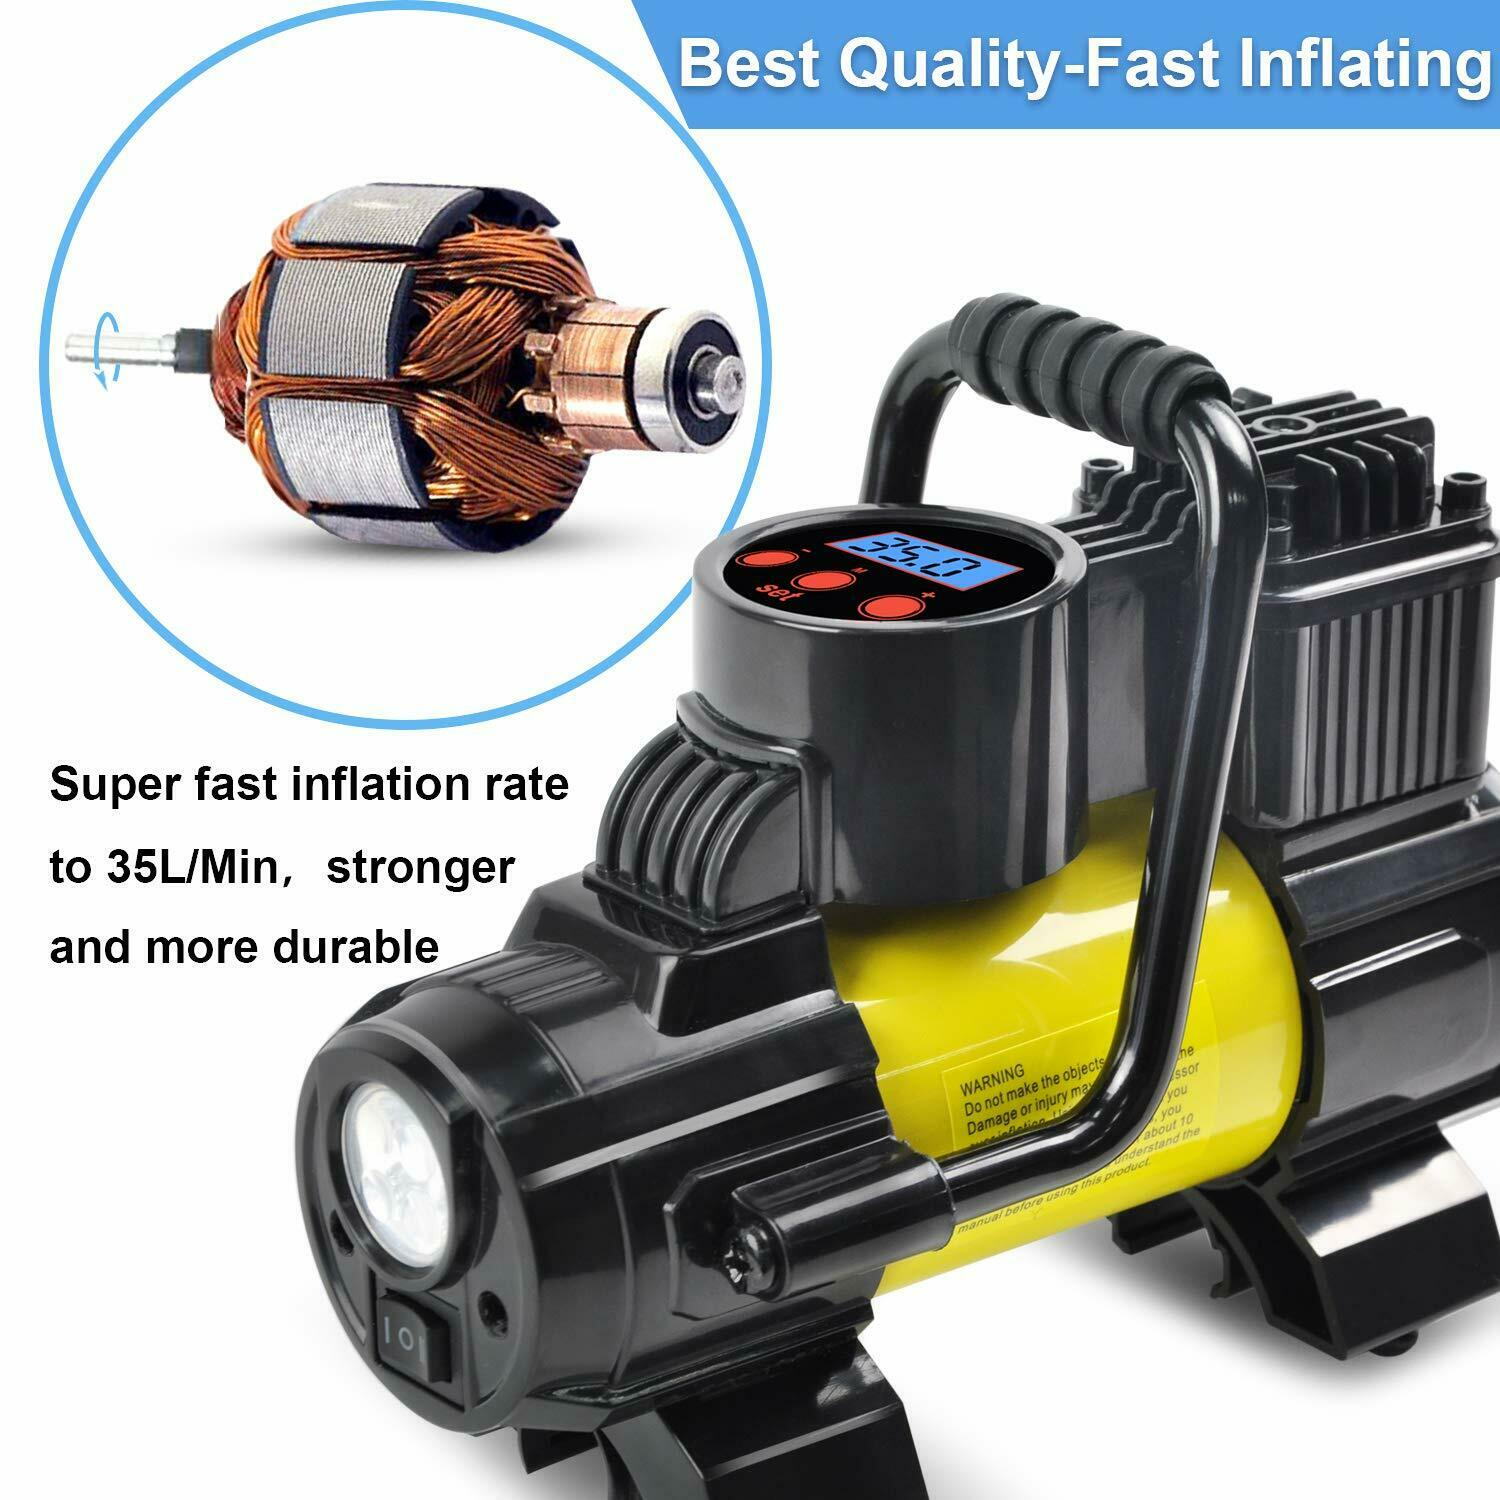 Heavy Duty Portable Air Compressor Car Tire Inflator Electric Pump Auto 12V. Available Now for 33.99